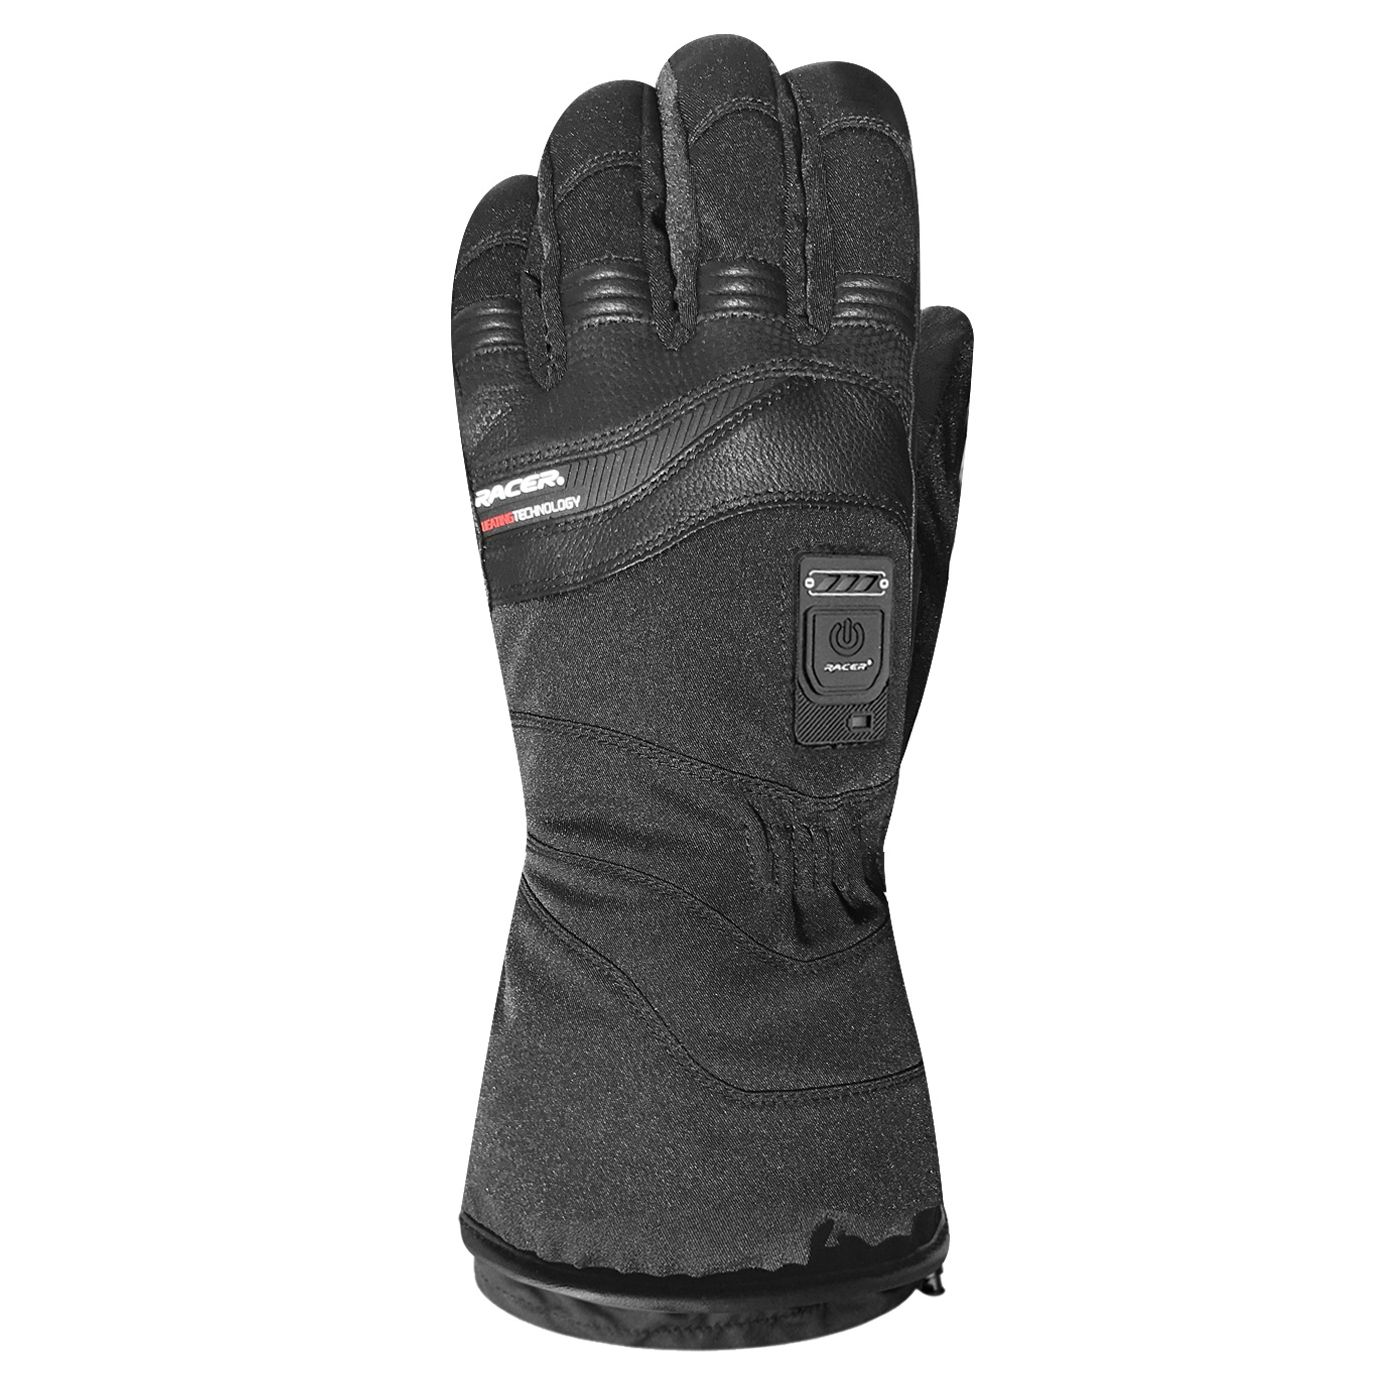 Guantes Racer CONNECTIC 3